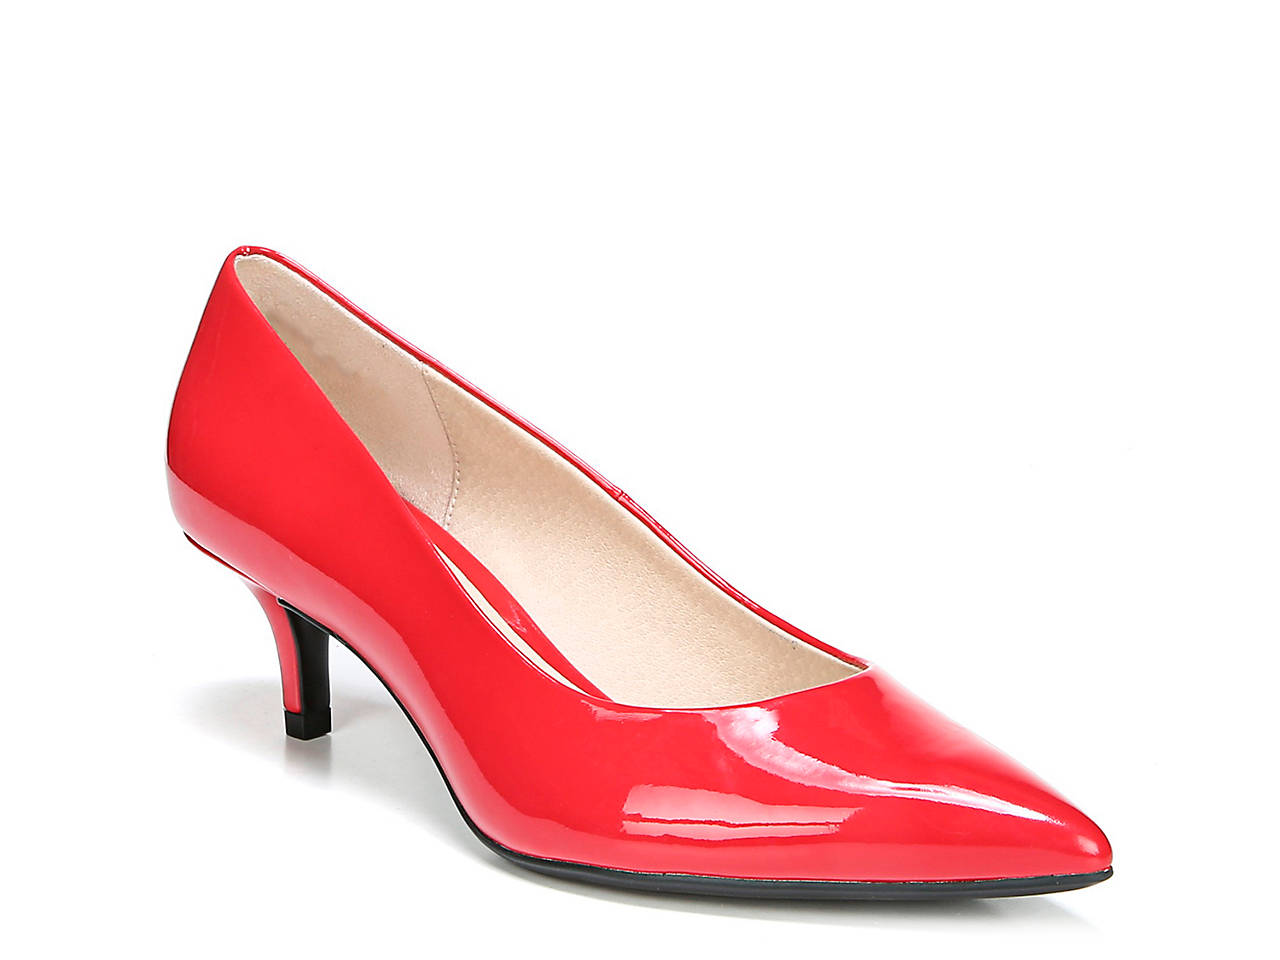 07748860f35 LifeStride Pretty Pump Women s Shoes